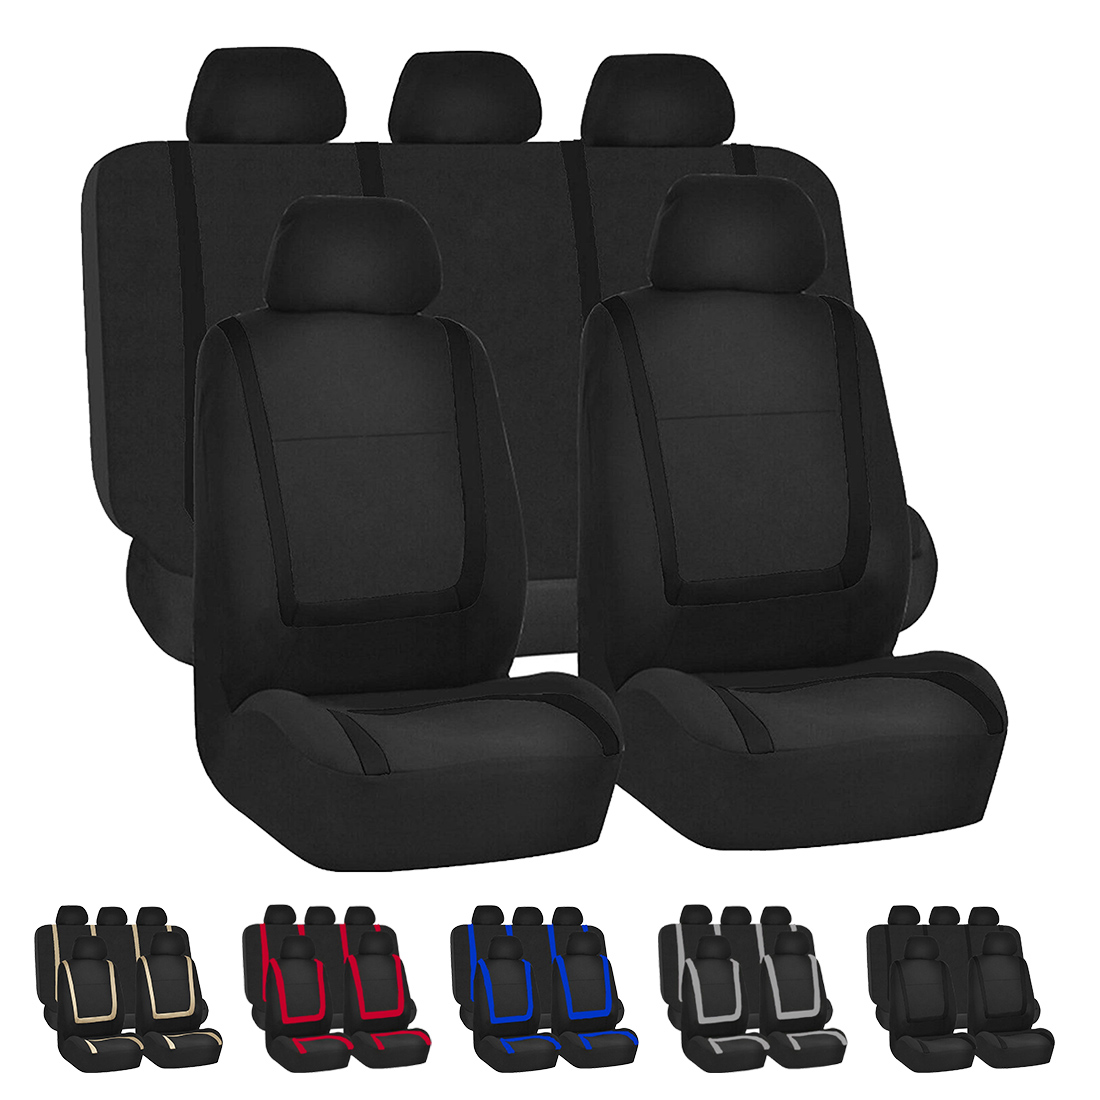 Dewtreetali Car Seat Cover Cloth Fabric 9pcs Universal Automobile Seat Covers Protector Black Car Styling Interior Accessories